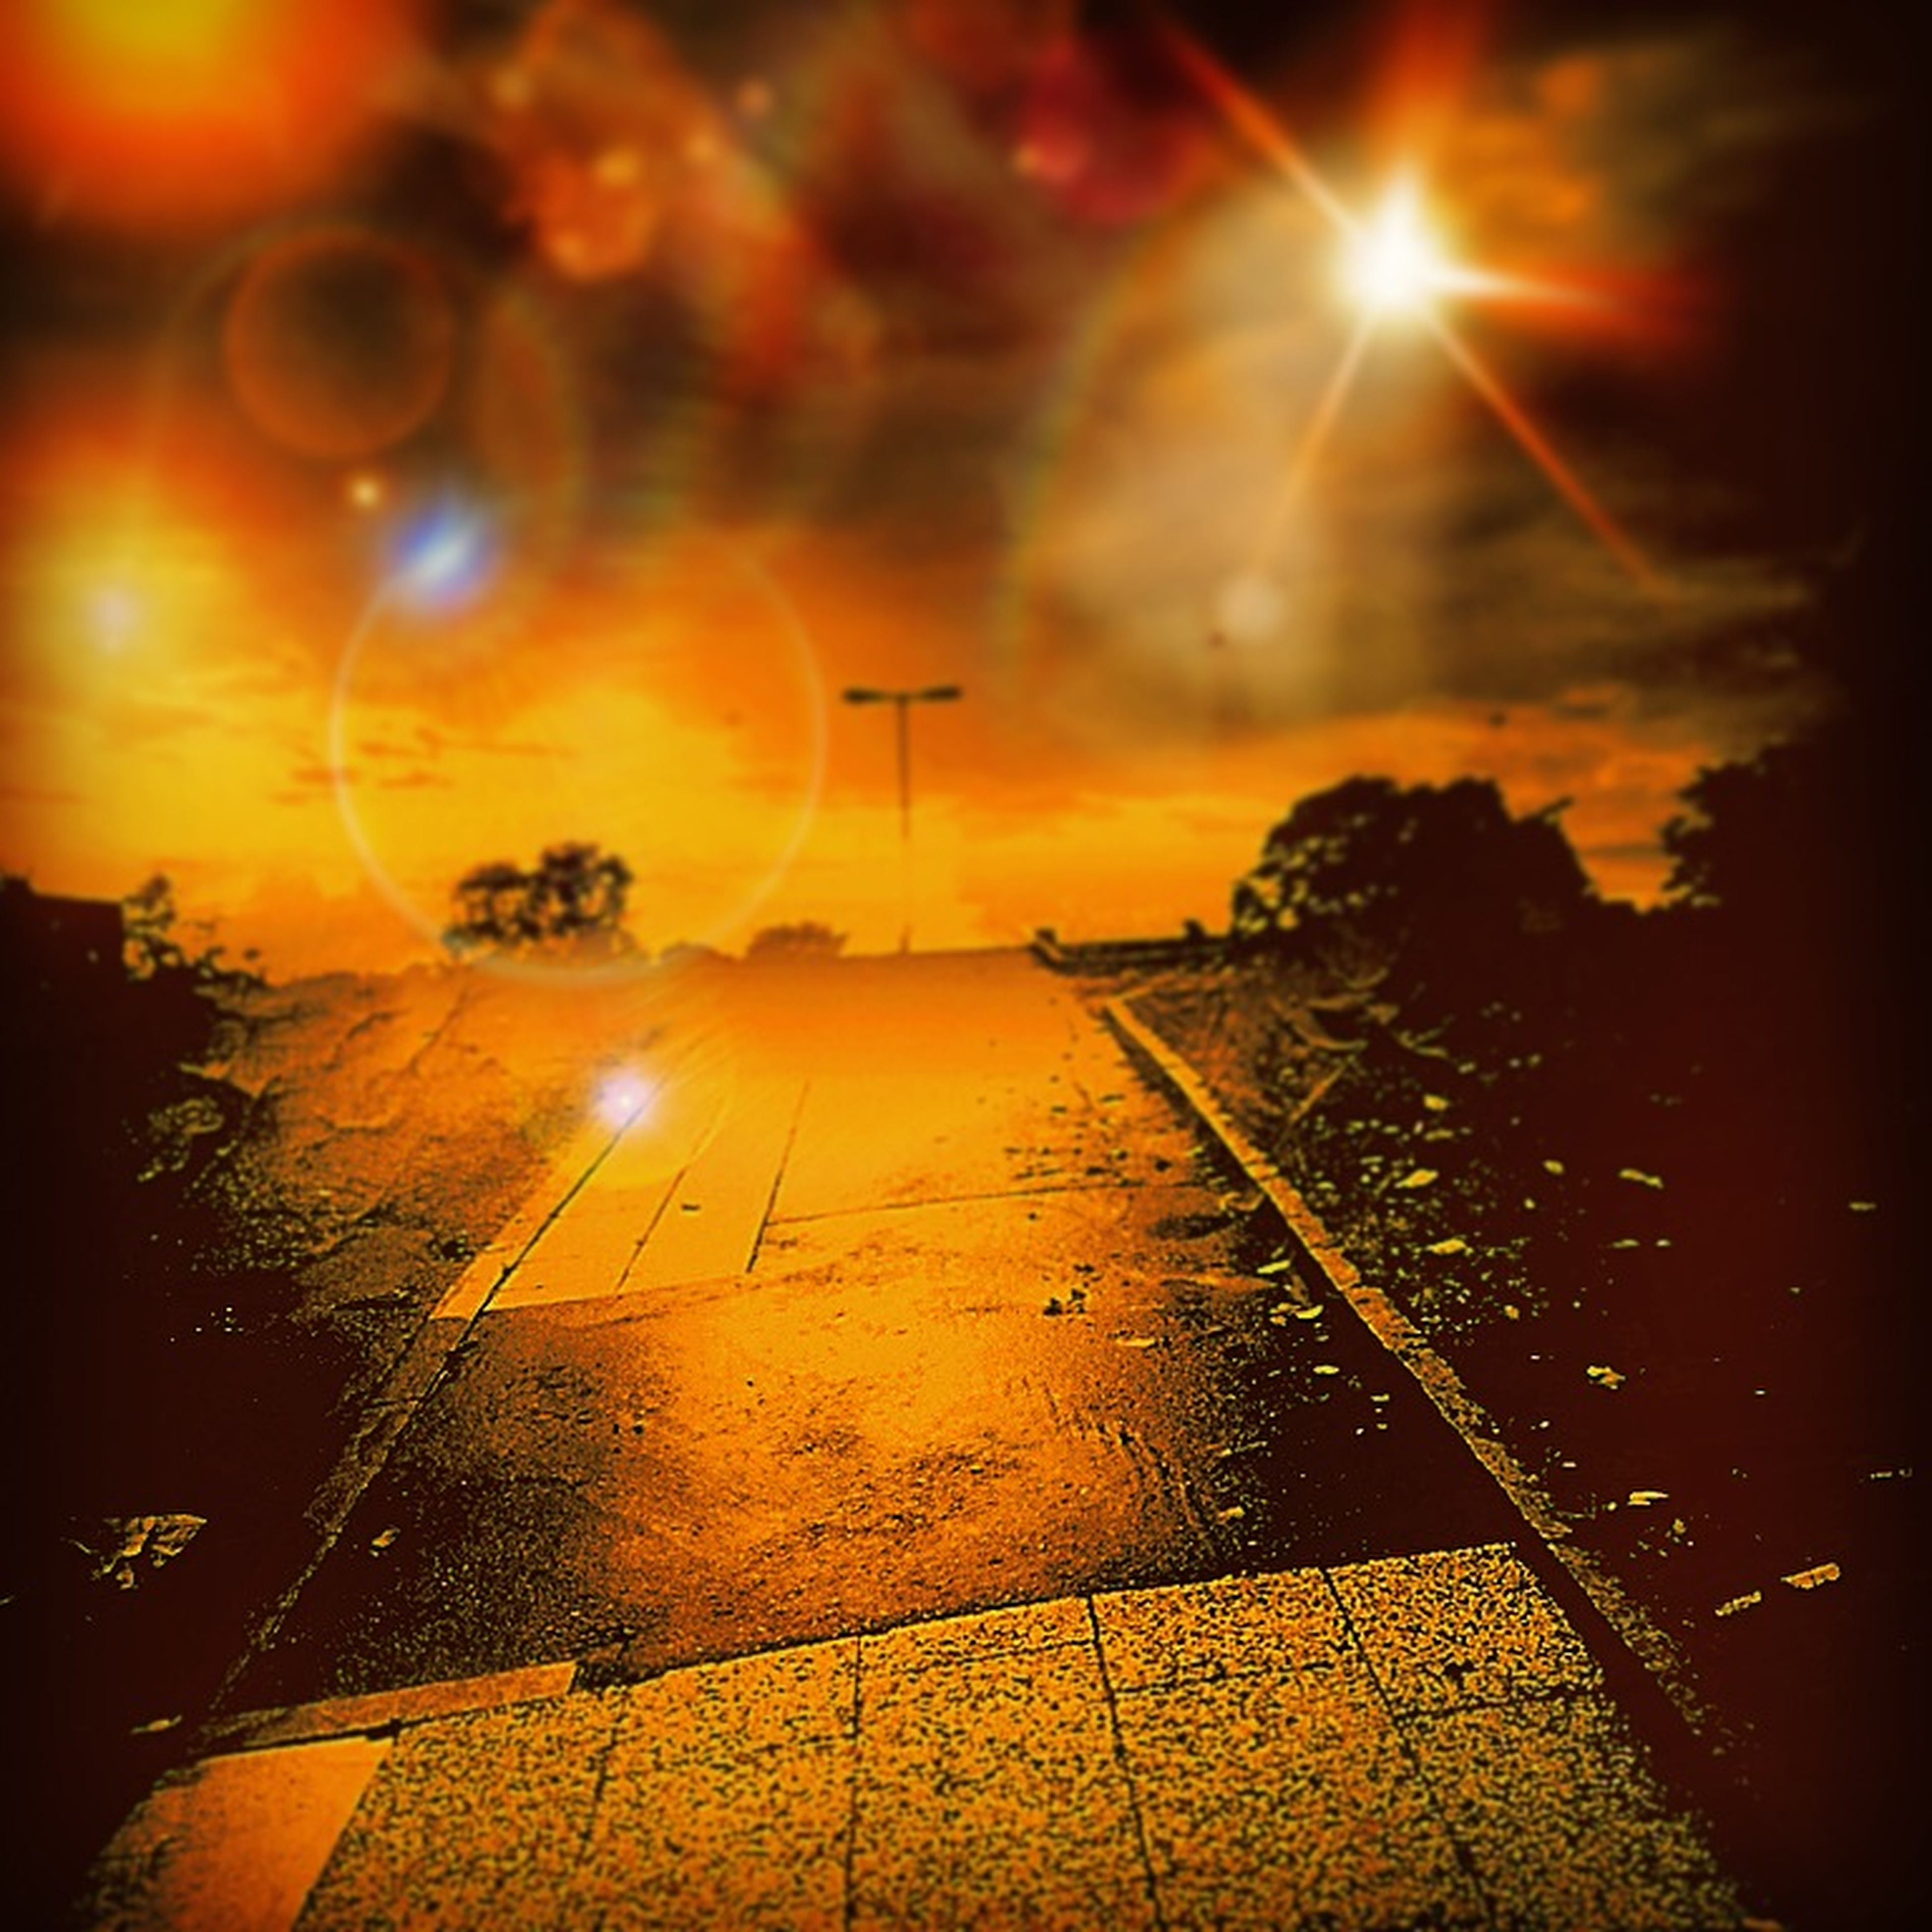 sunset, sun, transportation, lens flare, street light, orange color, illuminated, sky, sunbeam, sunlight, road, street, lighting equipment, the way forward, outdoors, no people, car, mode of transport, glowing, nature